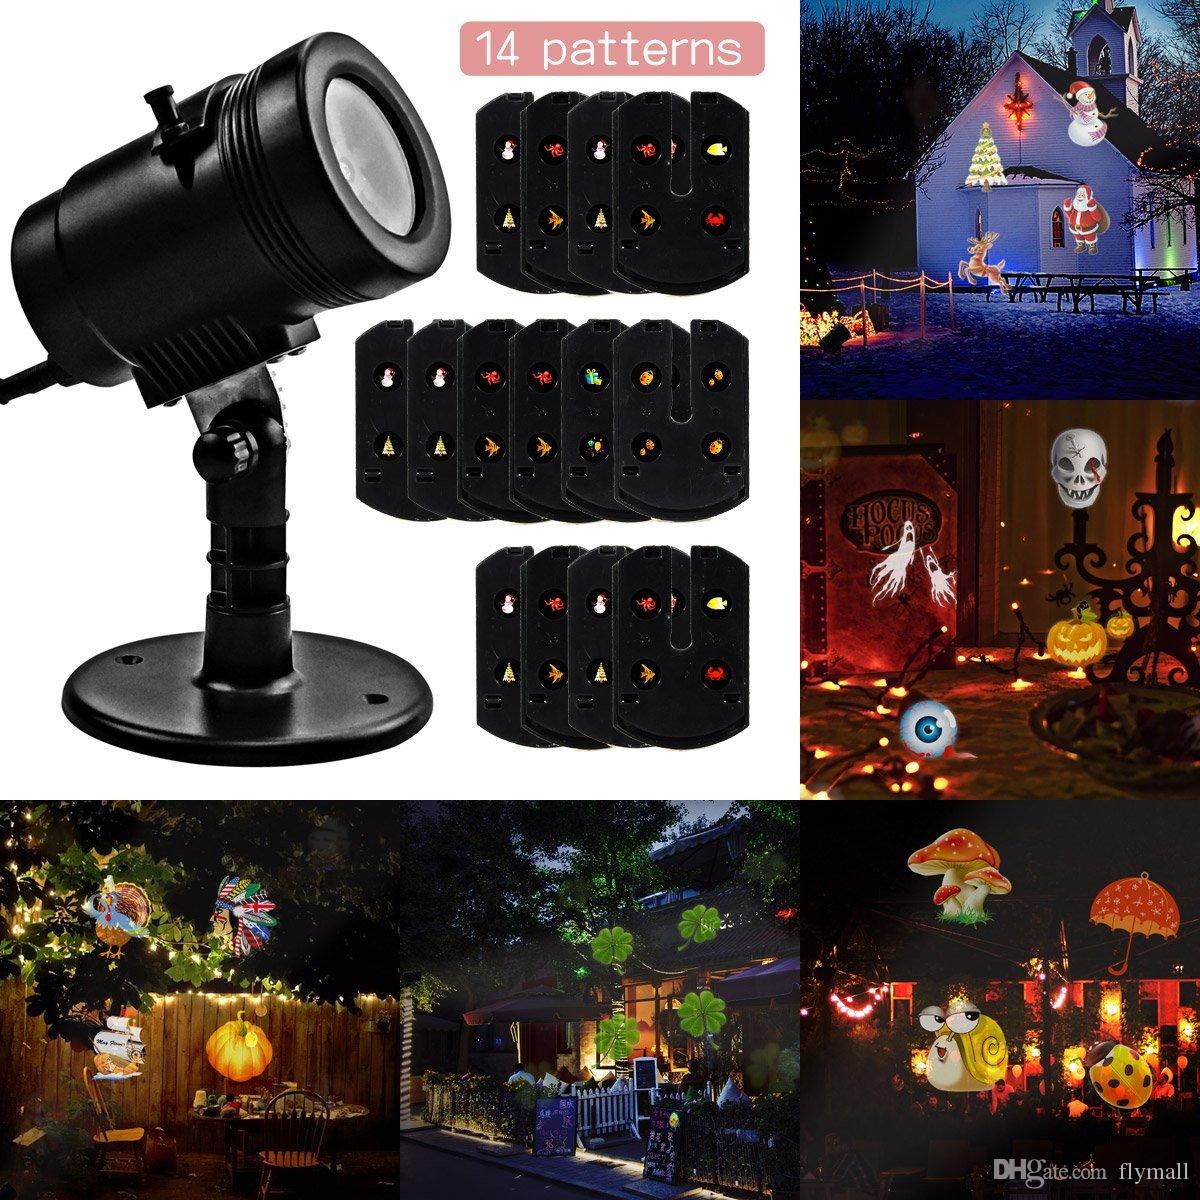 Lights & Lighting Stage Lighting Effect Led Garden Light Projector Projection Lamp Fairy Lights Show For Christmas Day Holiday Party Landscape Stage Lighting Spotlight